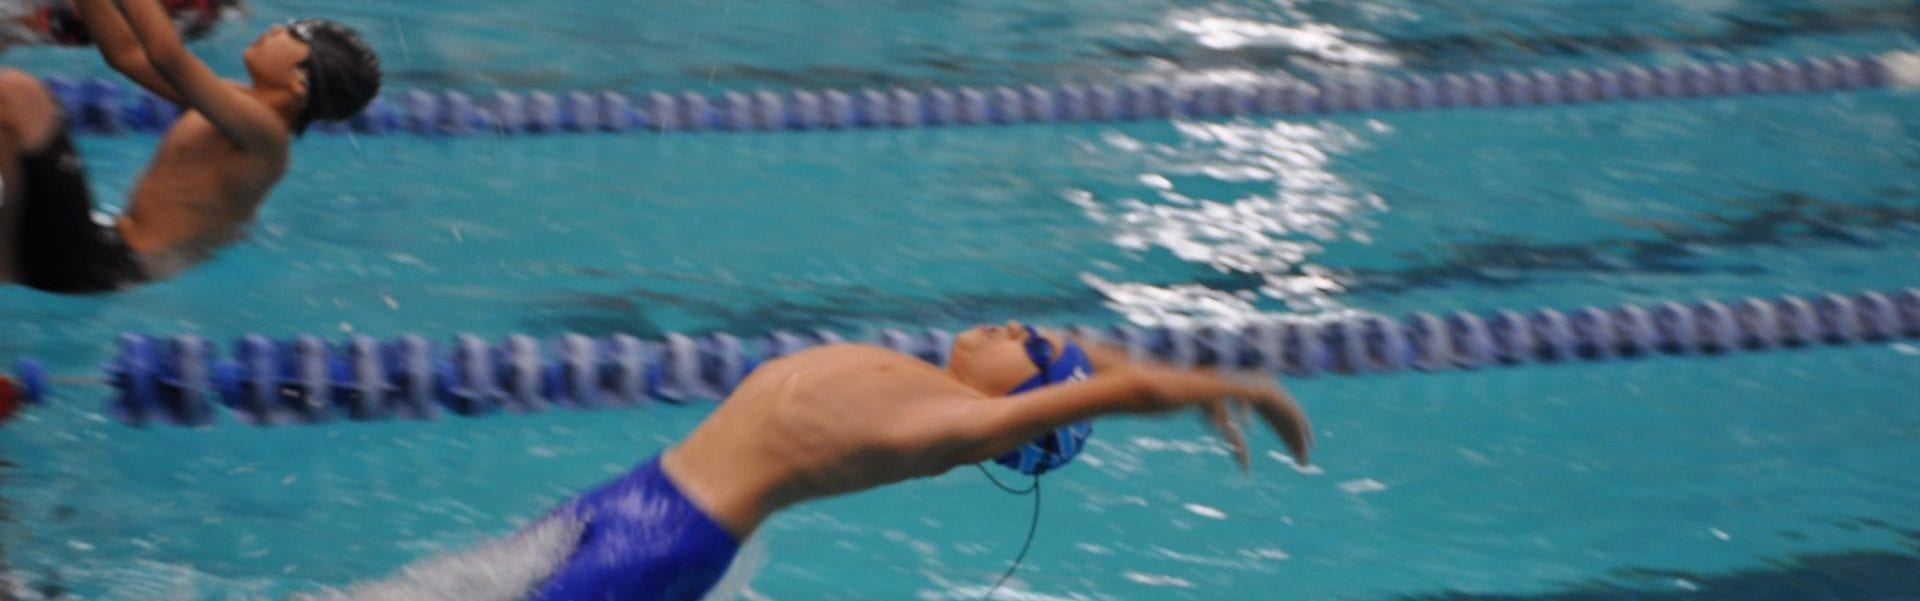 Competitive Swim Page Header